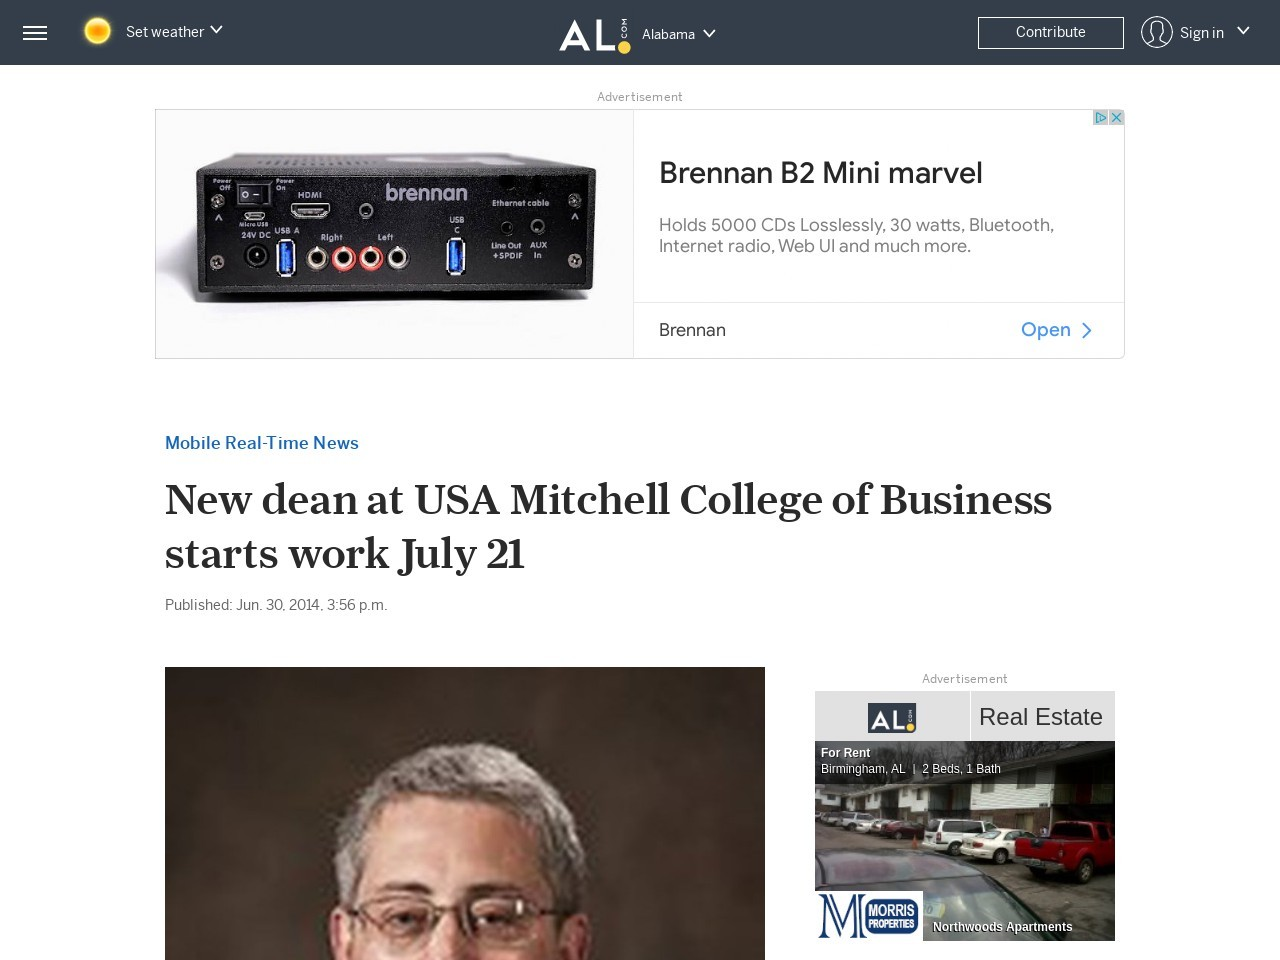 New dean at USA Mitchell College of Business starts work July 21